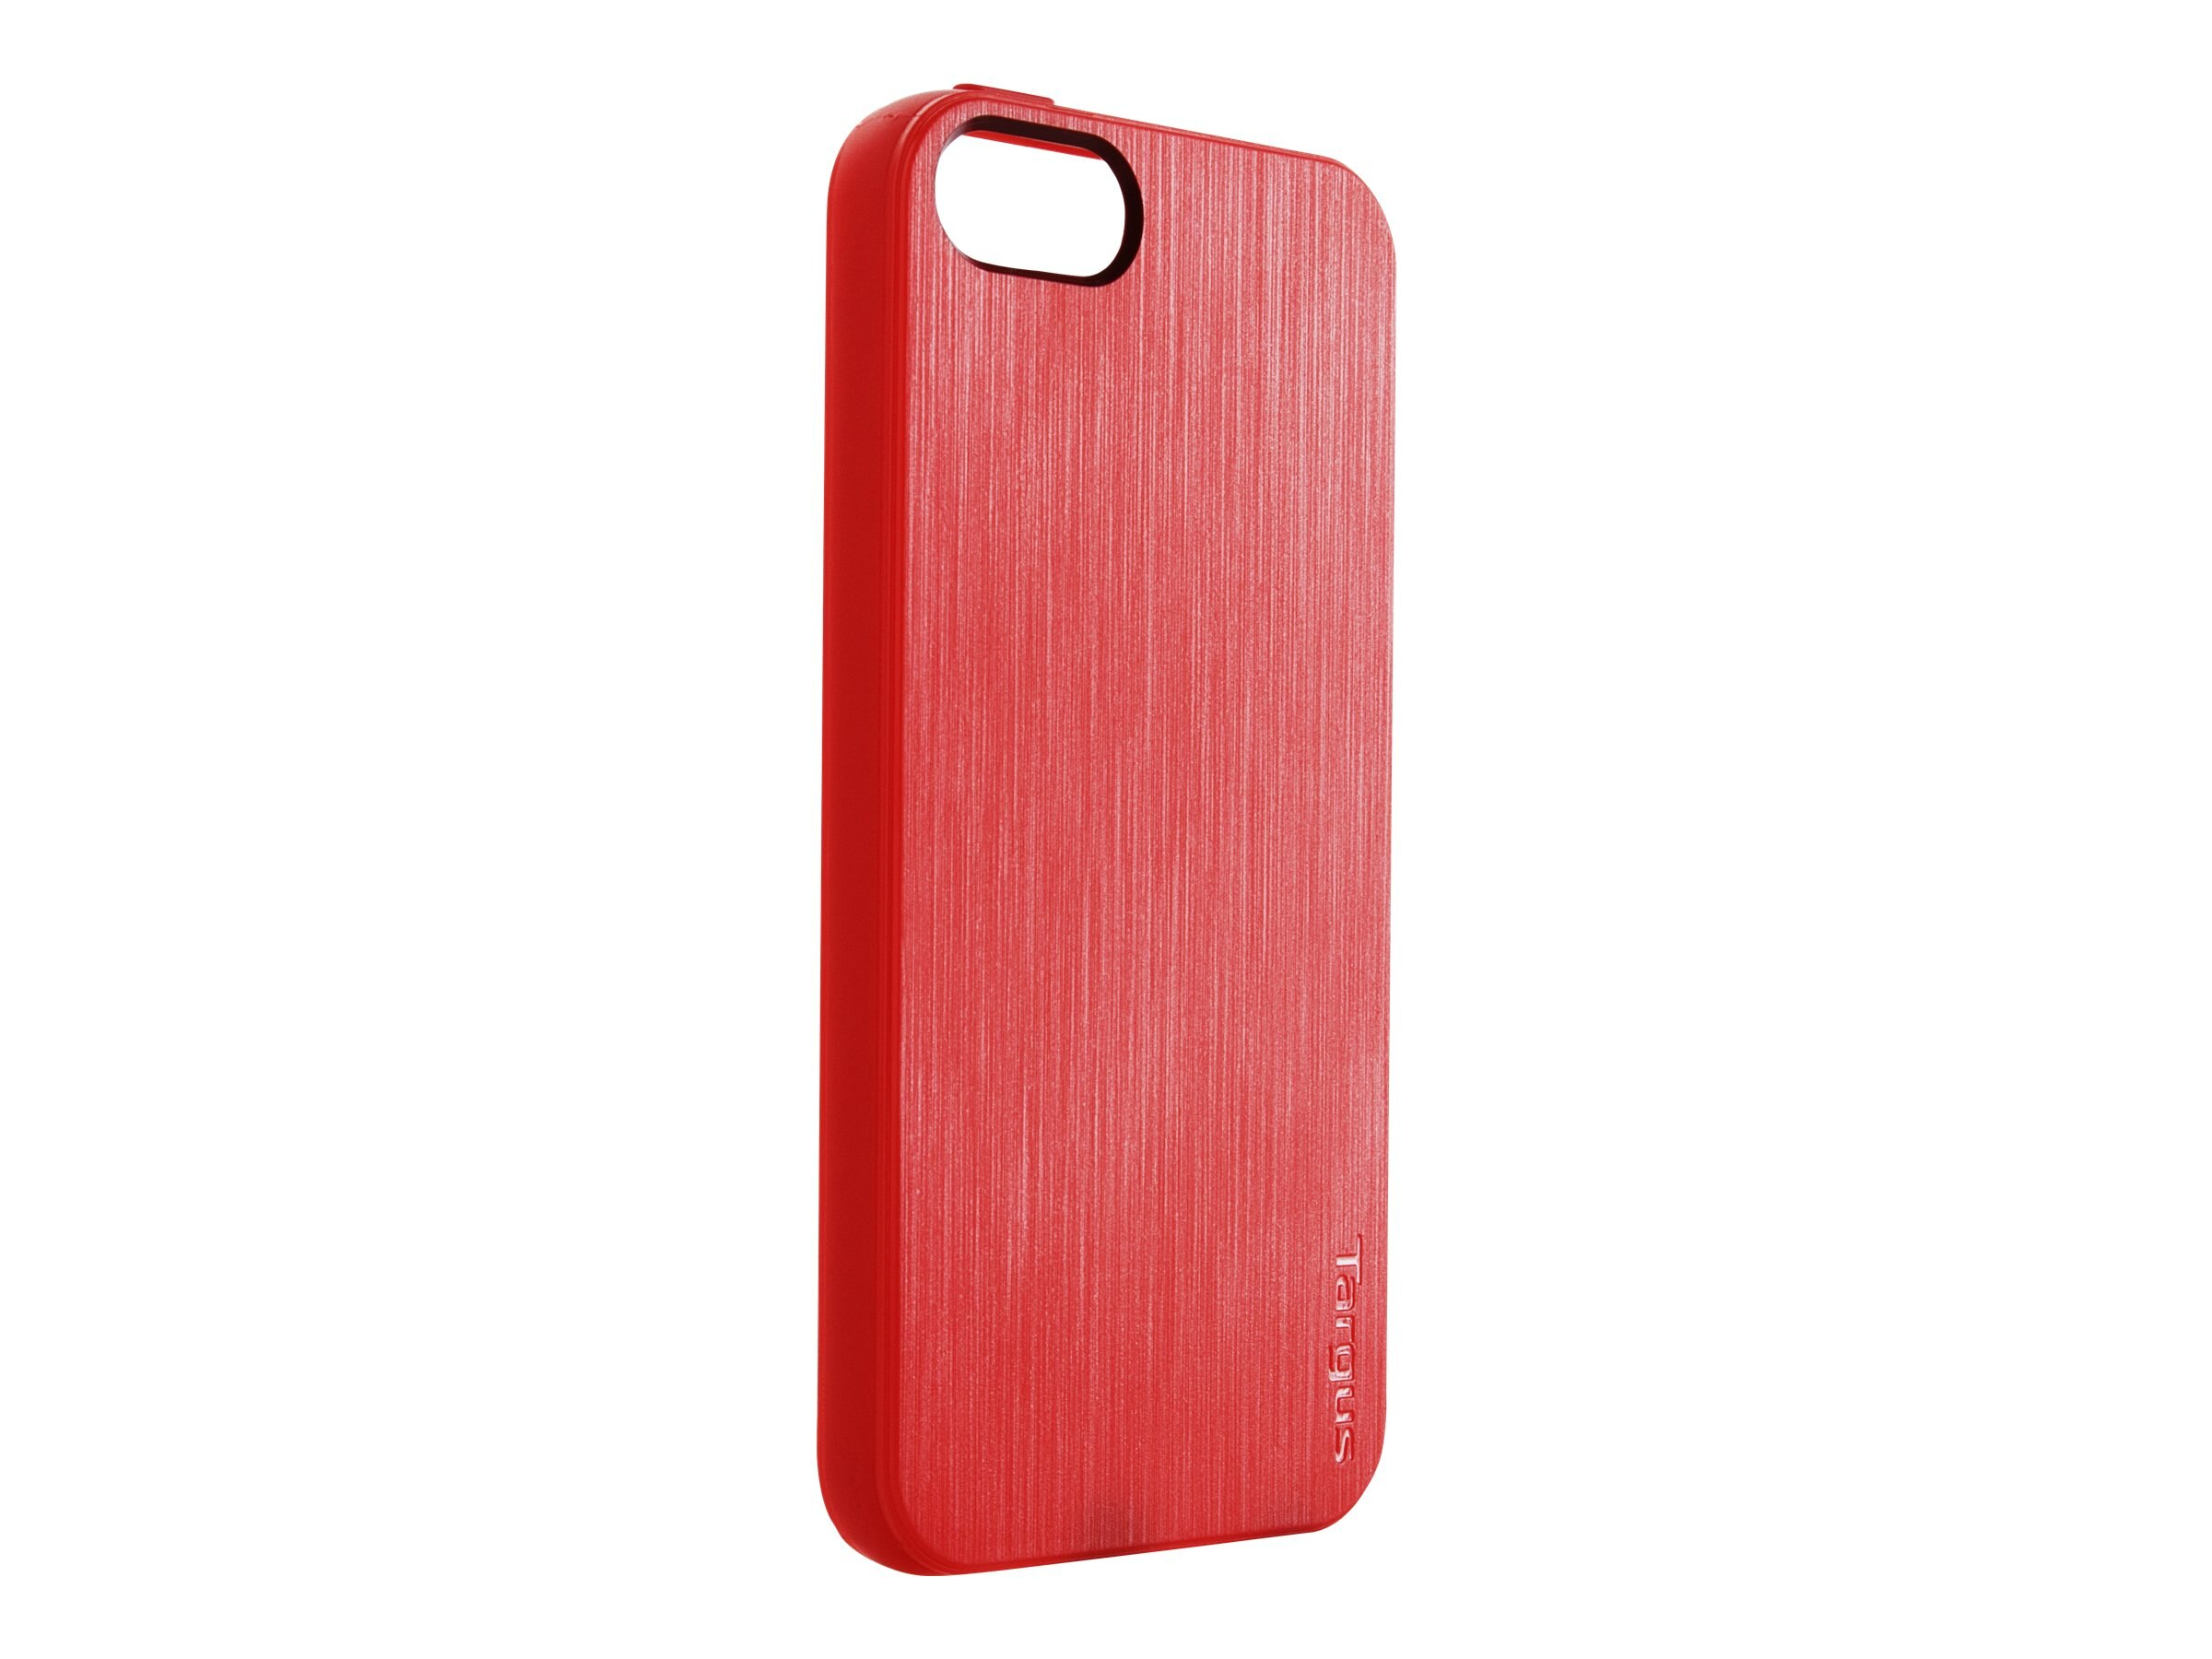 Targus Slim-Fit Back Cover for iPhone 5, Red, THD03103US